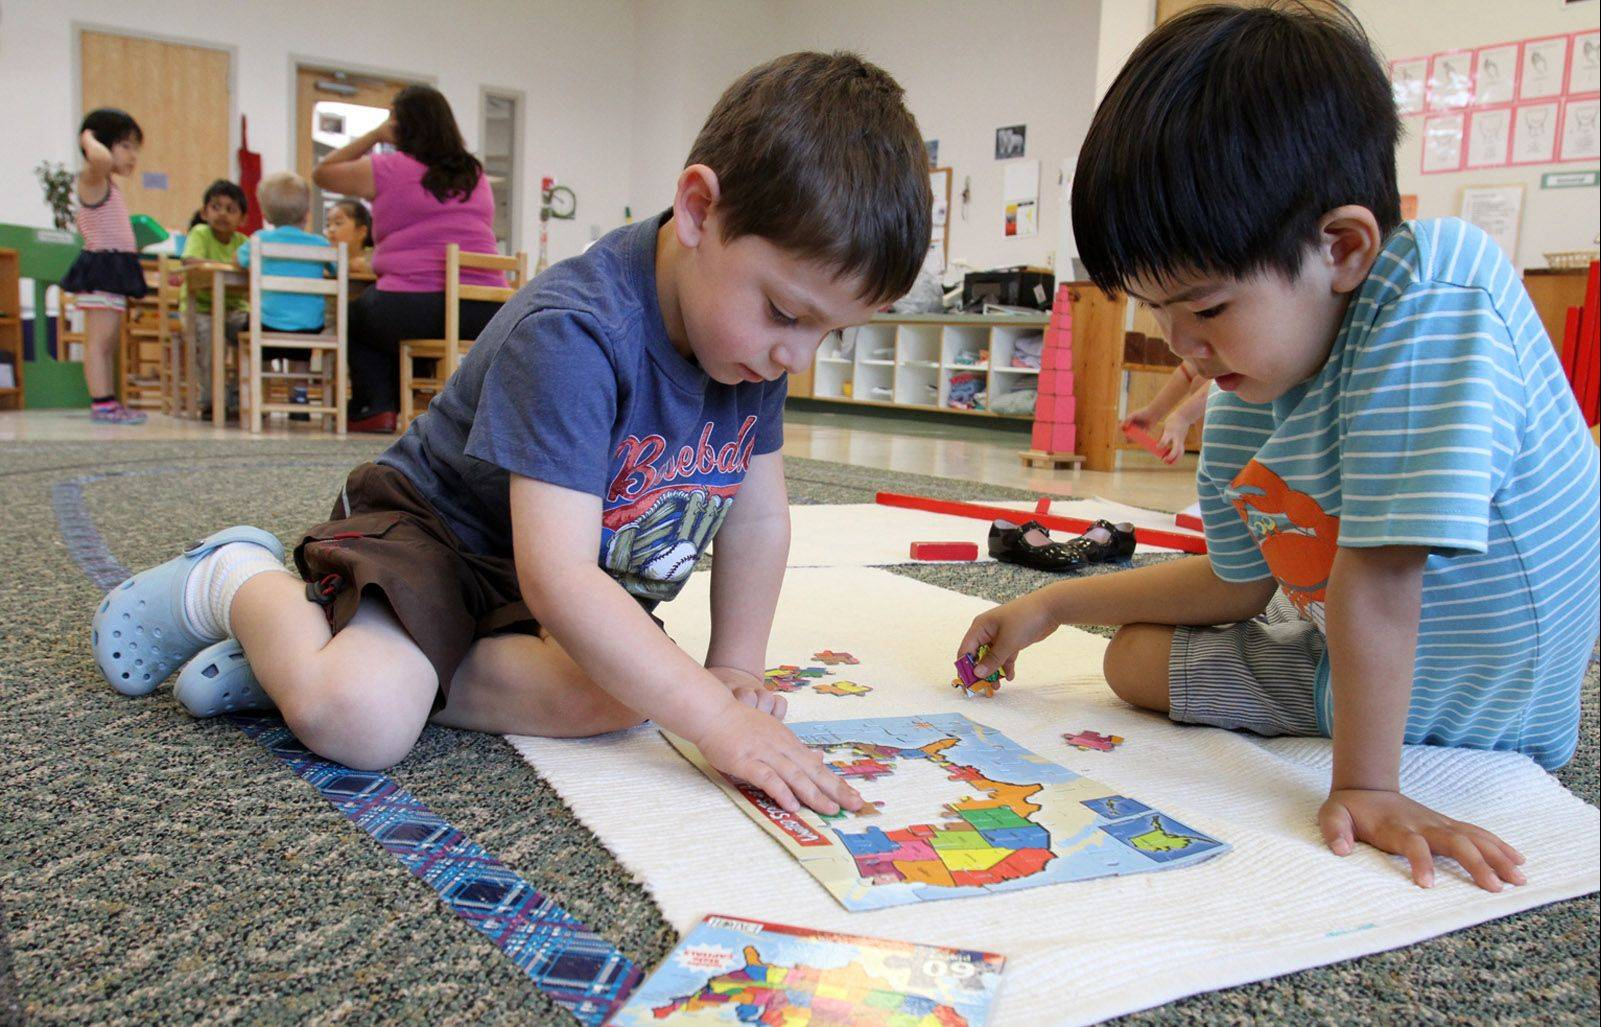 Rahm Sheinfeld, 4, left, and Alex Seo, 5, work on the U.S. map puzzle at the Montessori school in Wheeling. The Montessori school works with children from newborns to 12-year-olds.